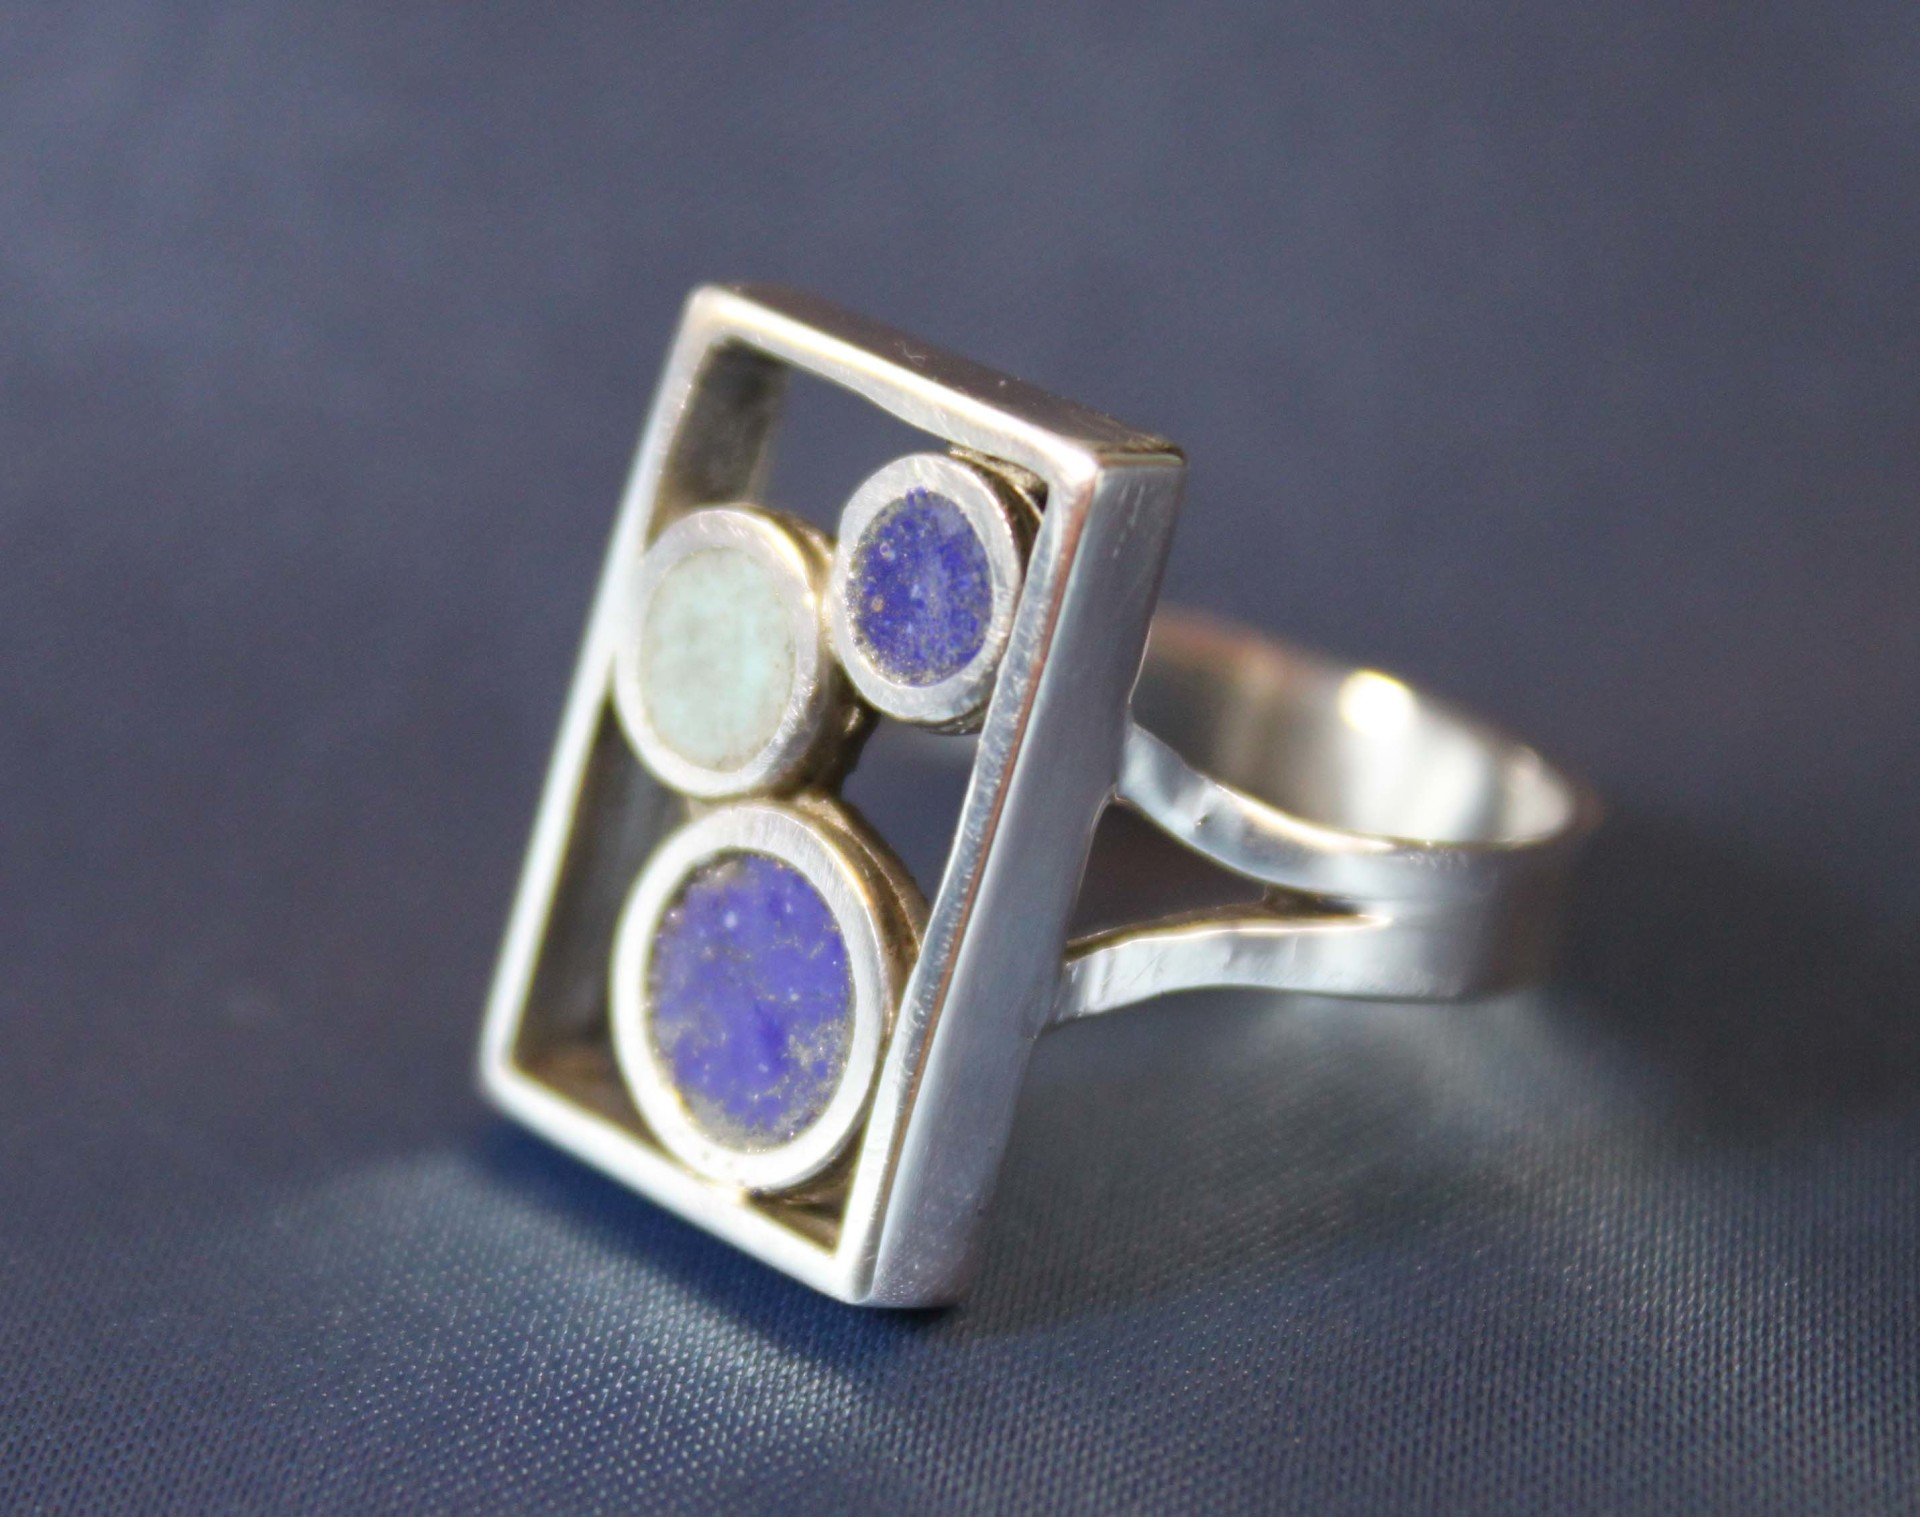 Rectangular enemelled ring